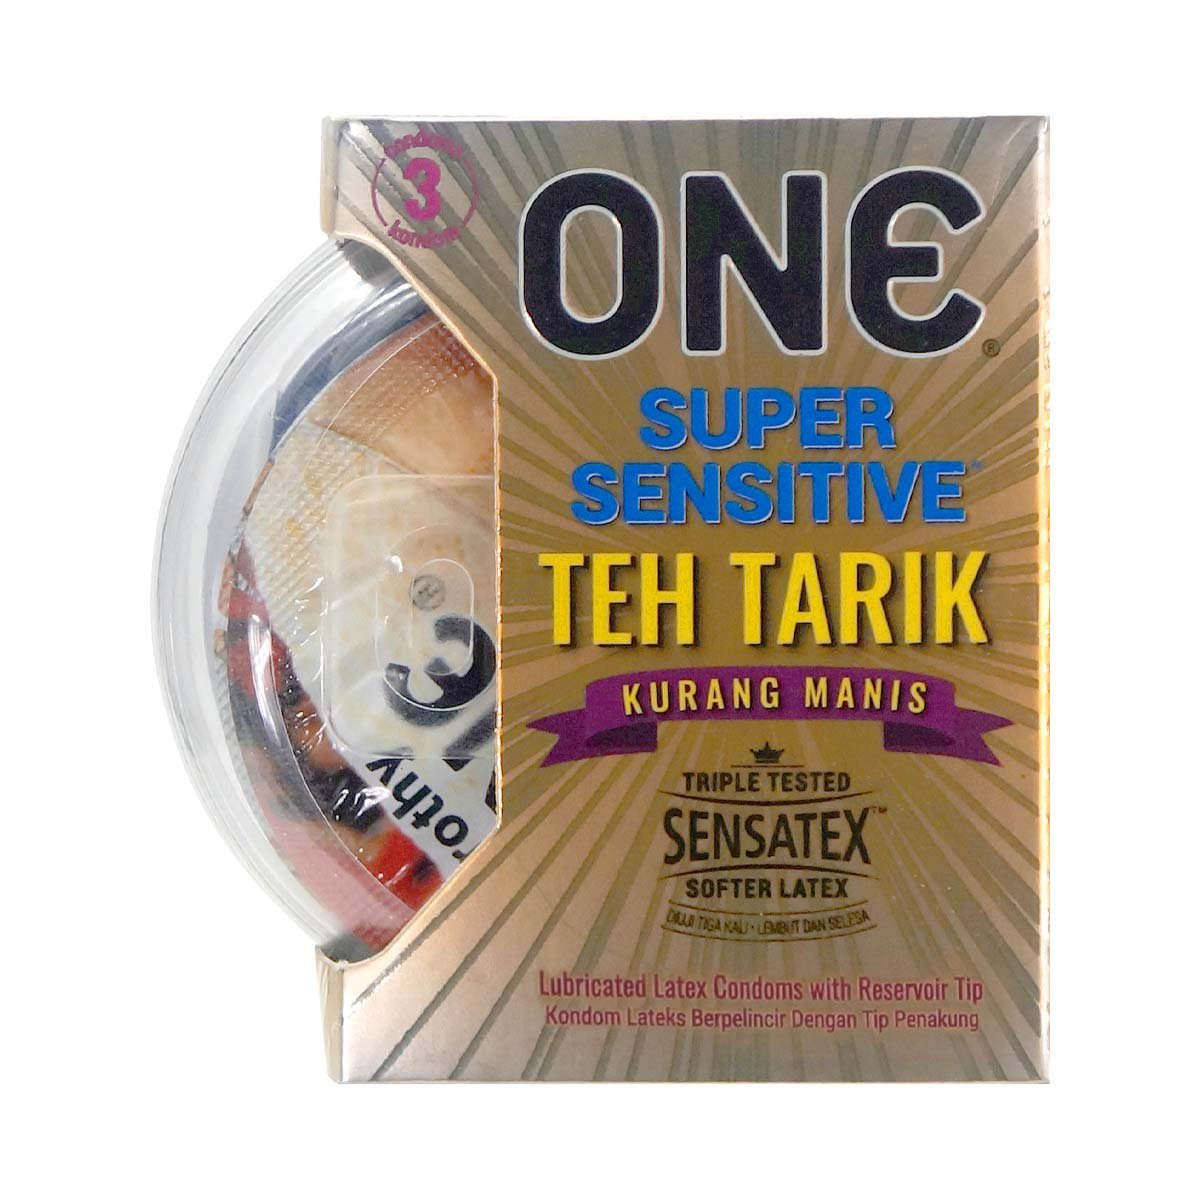 ONE Super Sensitive Teh Tarik Kurang Manis 3's Pack Latex Condom